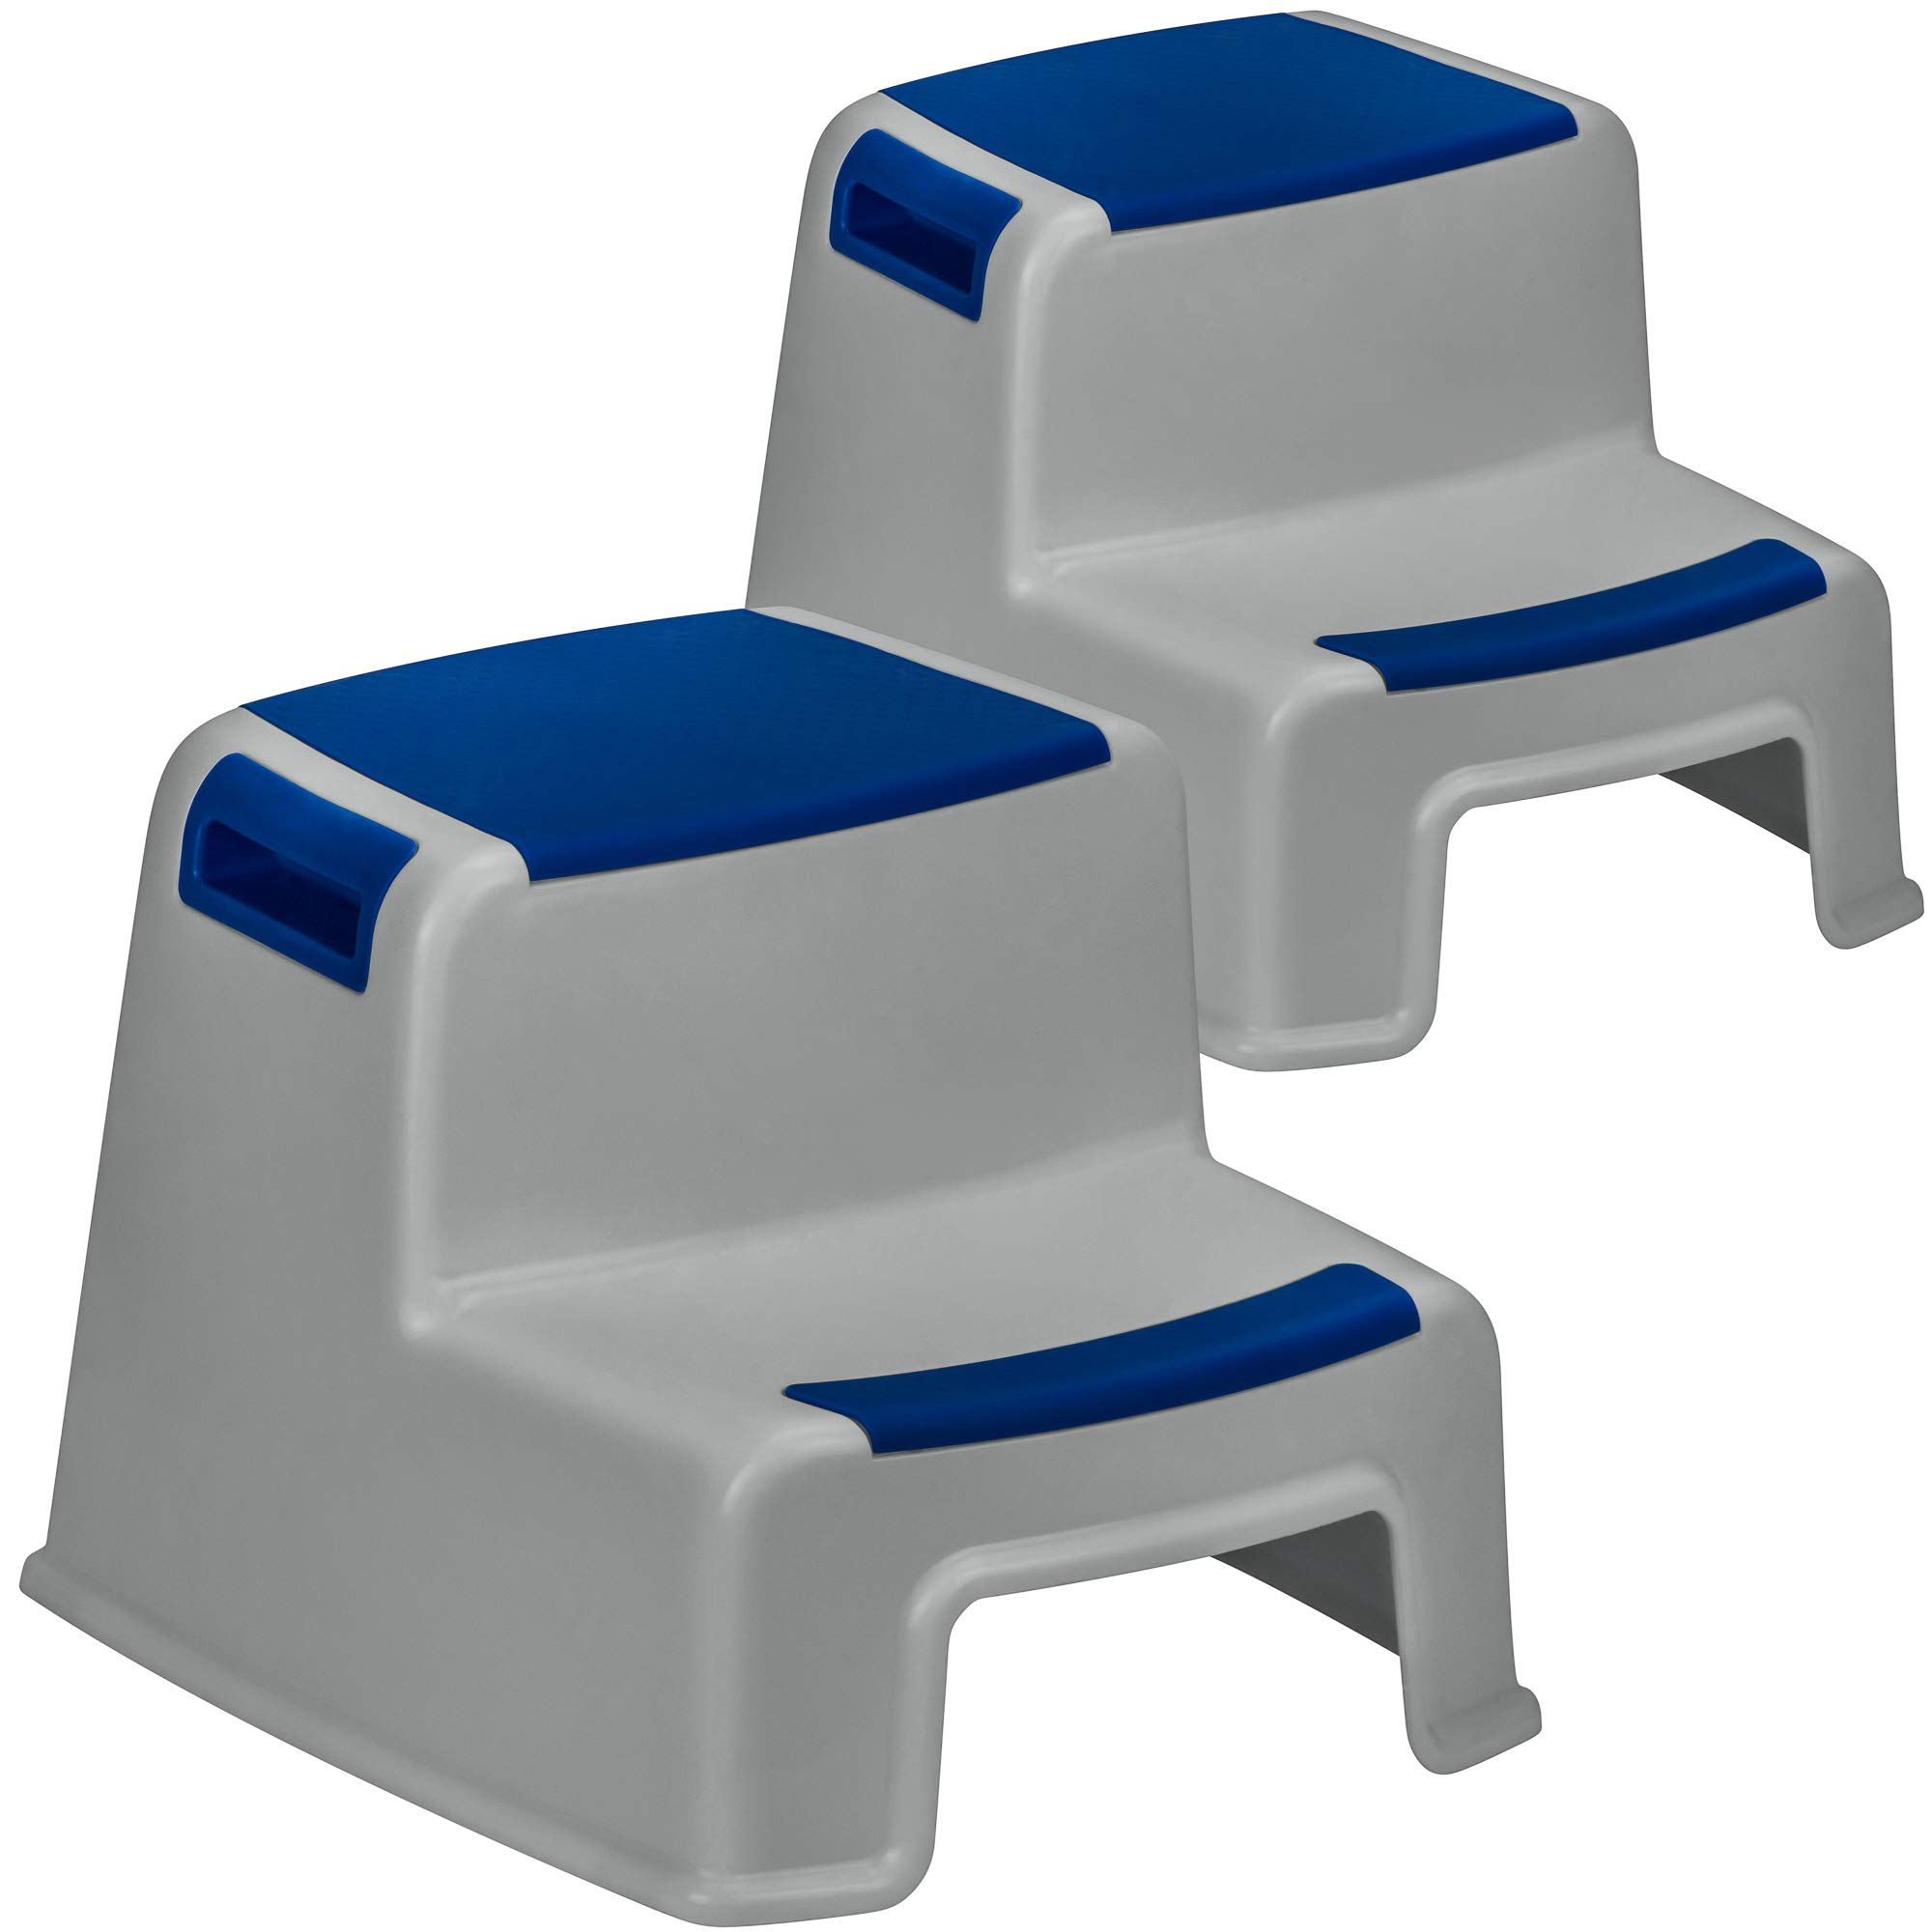 DecorRack 2 Step Stool for Kids, Adults, 2-Step Foot Stool with Handles, Non-Slip, Non-Skid Surface and Base, 280 lb Capacity, Sturdy, 11 Inches High Toilet Potty Training Stool, Blue Grey (2 Pack) by DecorRack